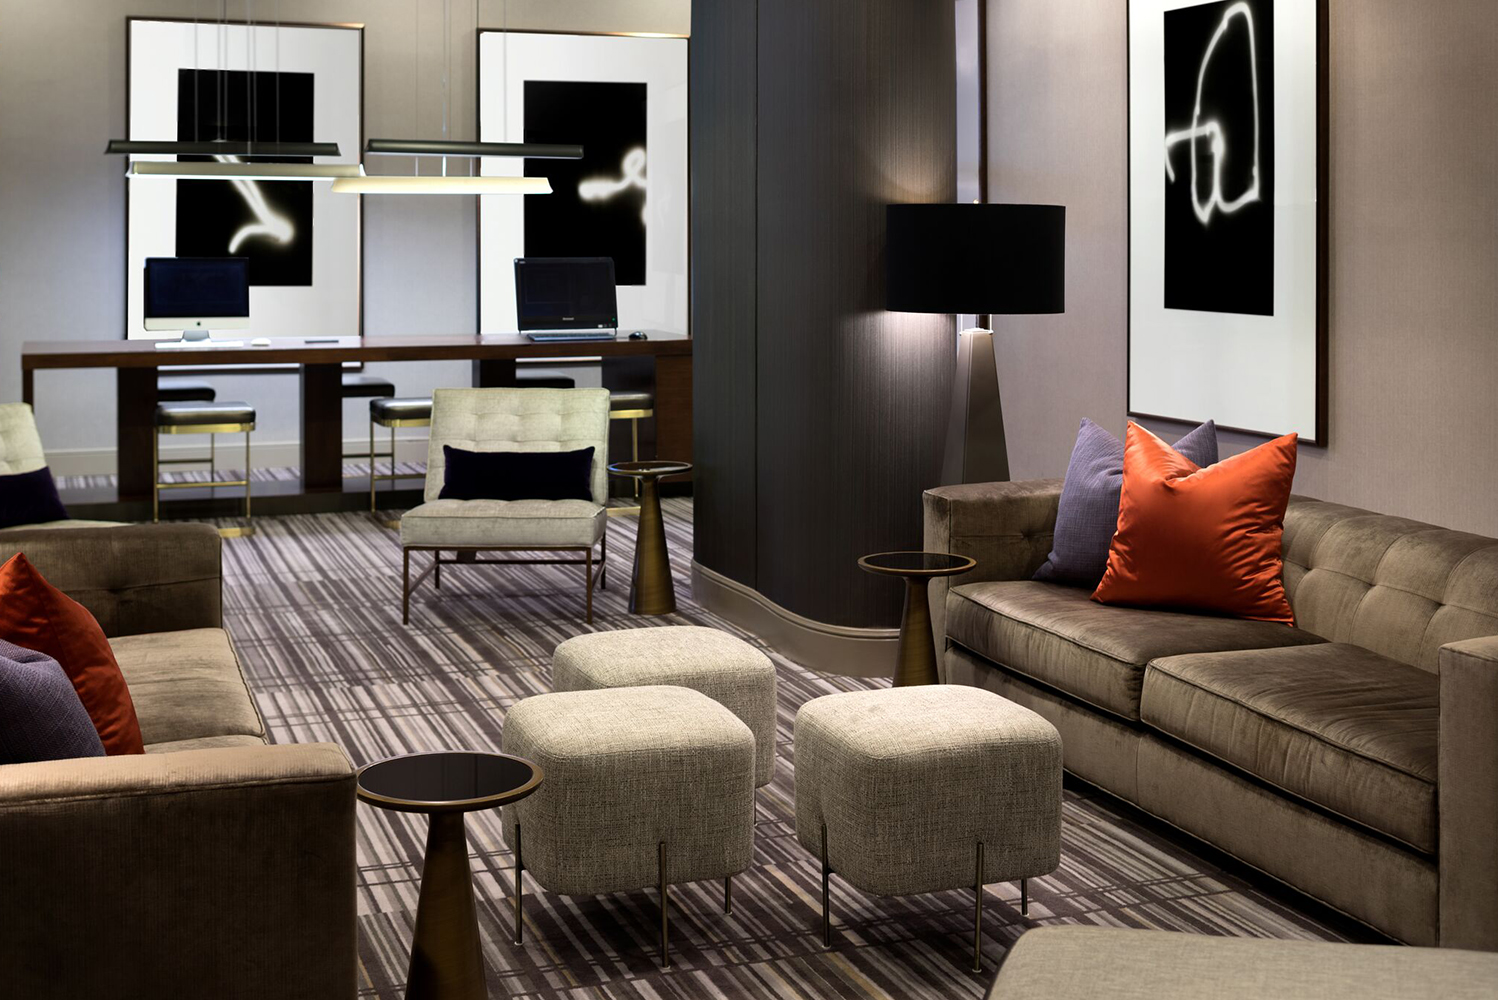 DoubleTree by Hilton Dallas – Campbell Centre is undergoing an $8 million renovation.